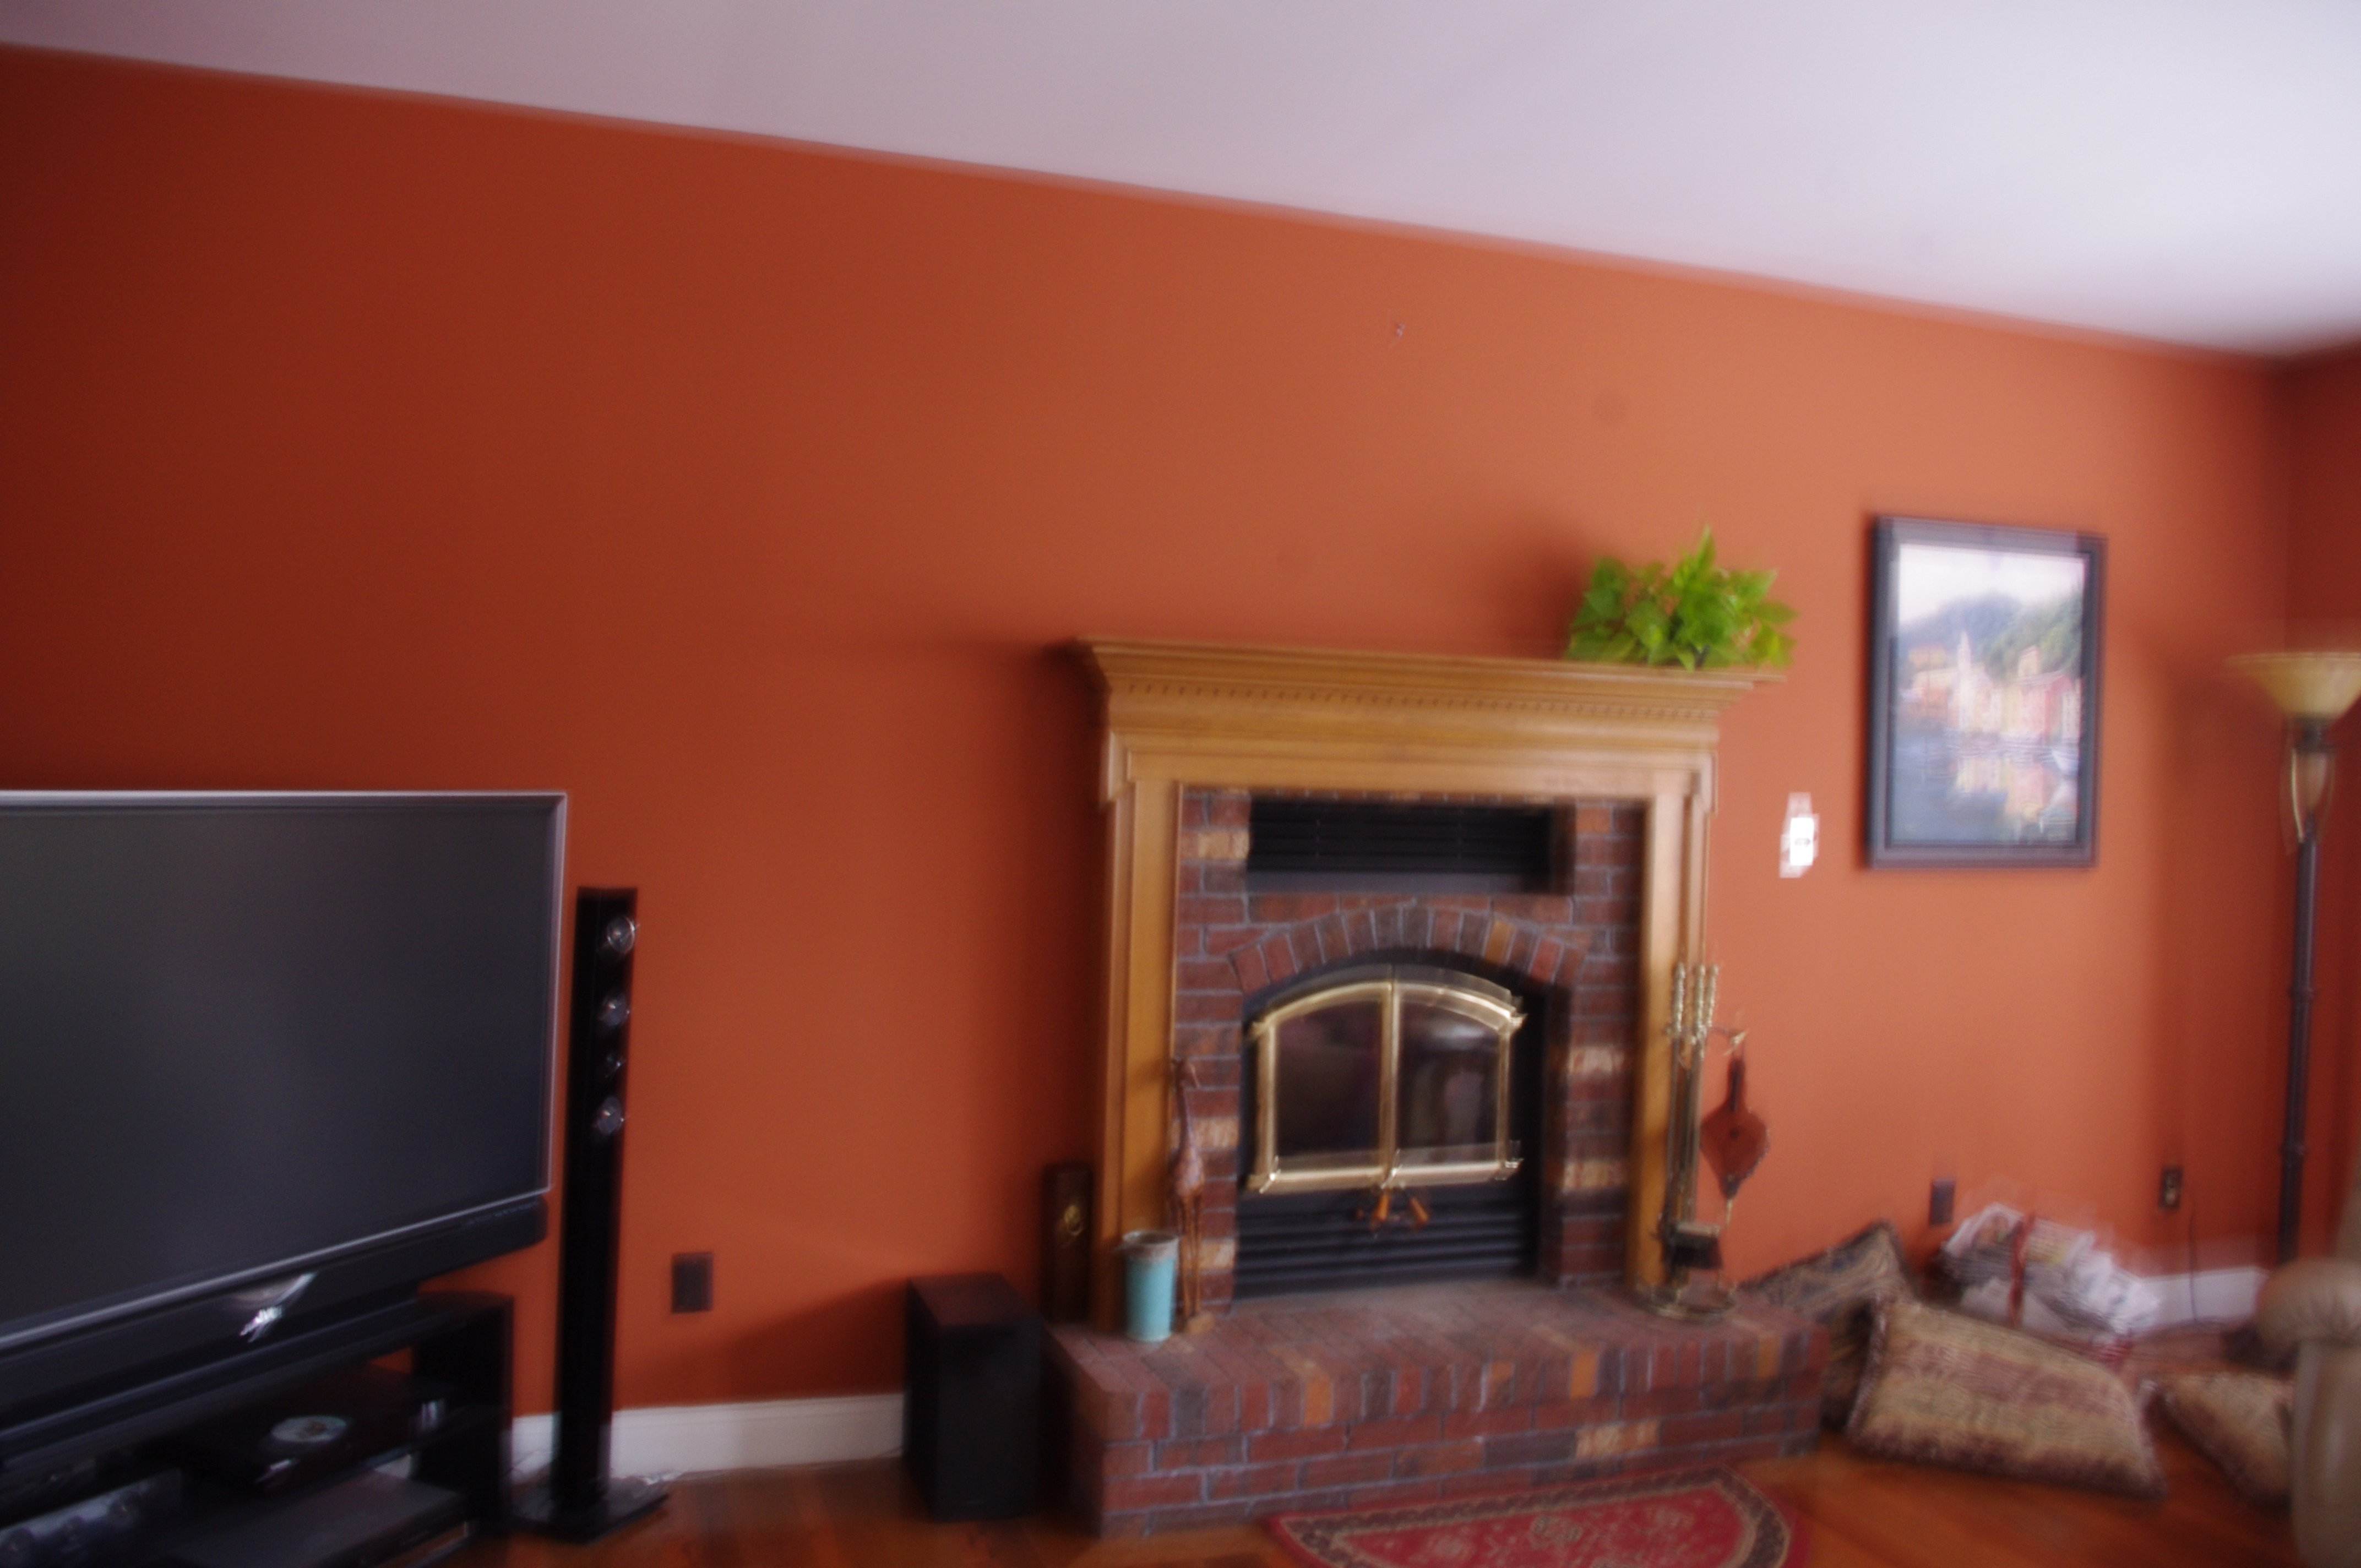 Sherwin Williams Sw6349 Pennywise Match Paint Colors